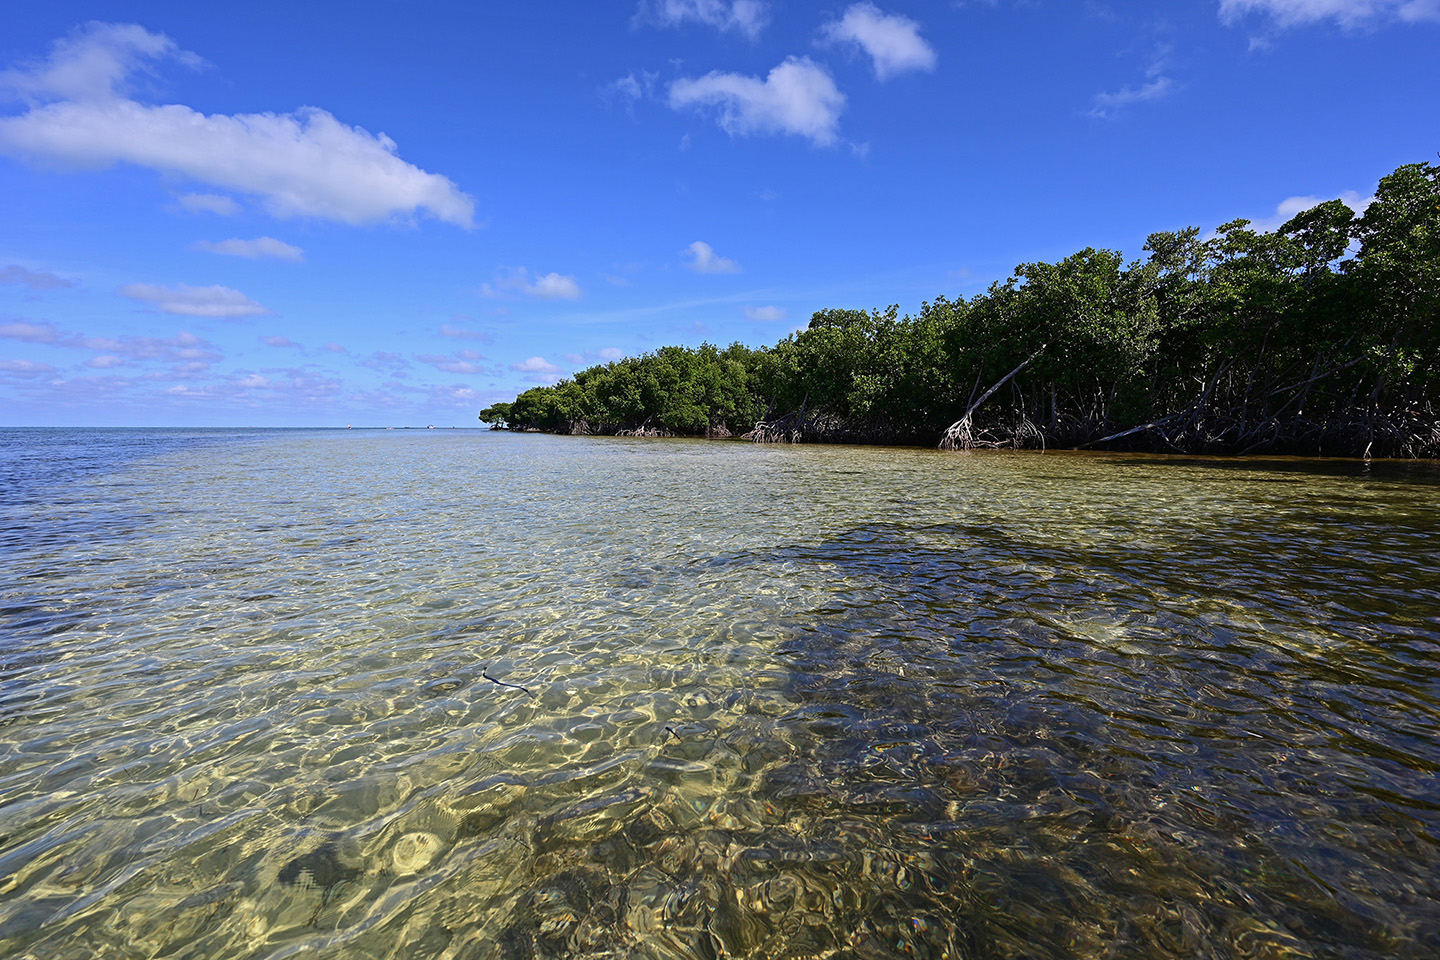 Clear, shallow water with mangroves in the distance